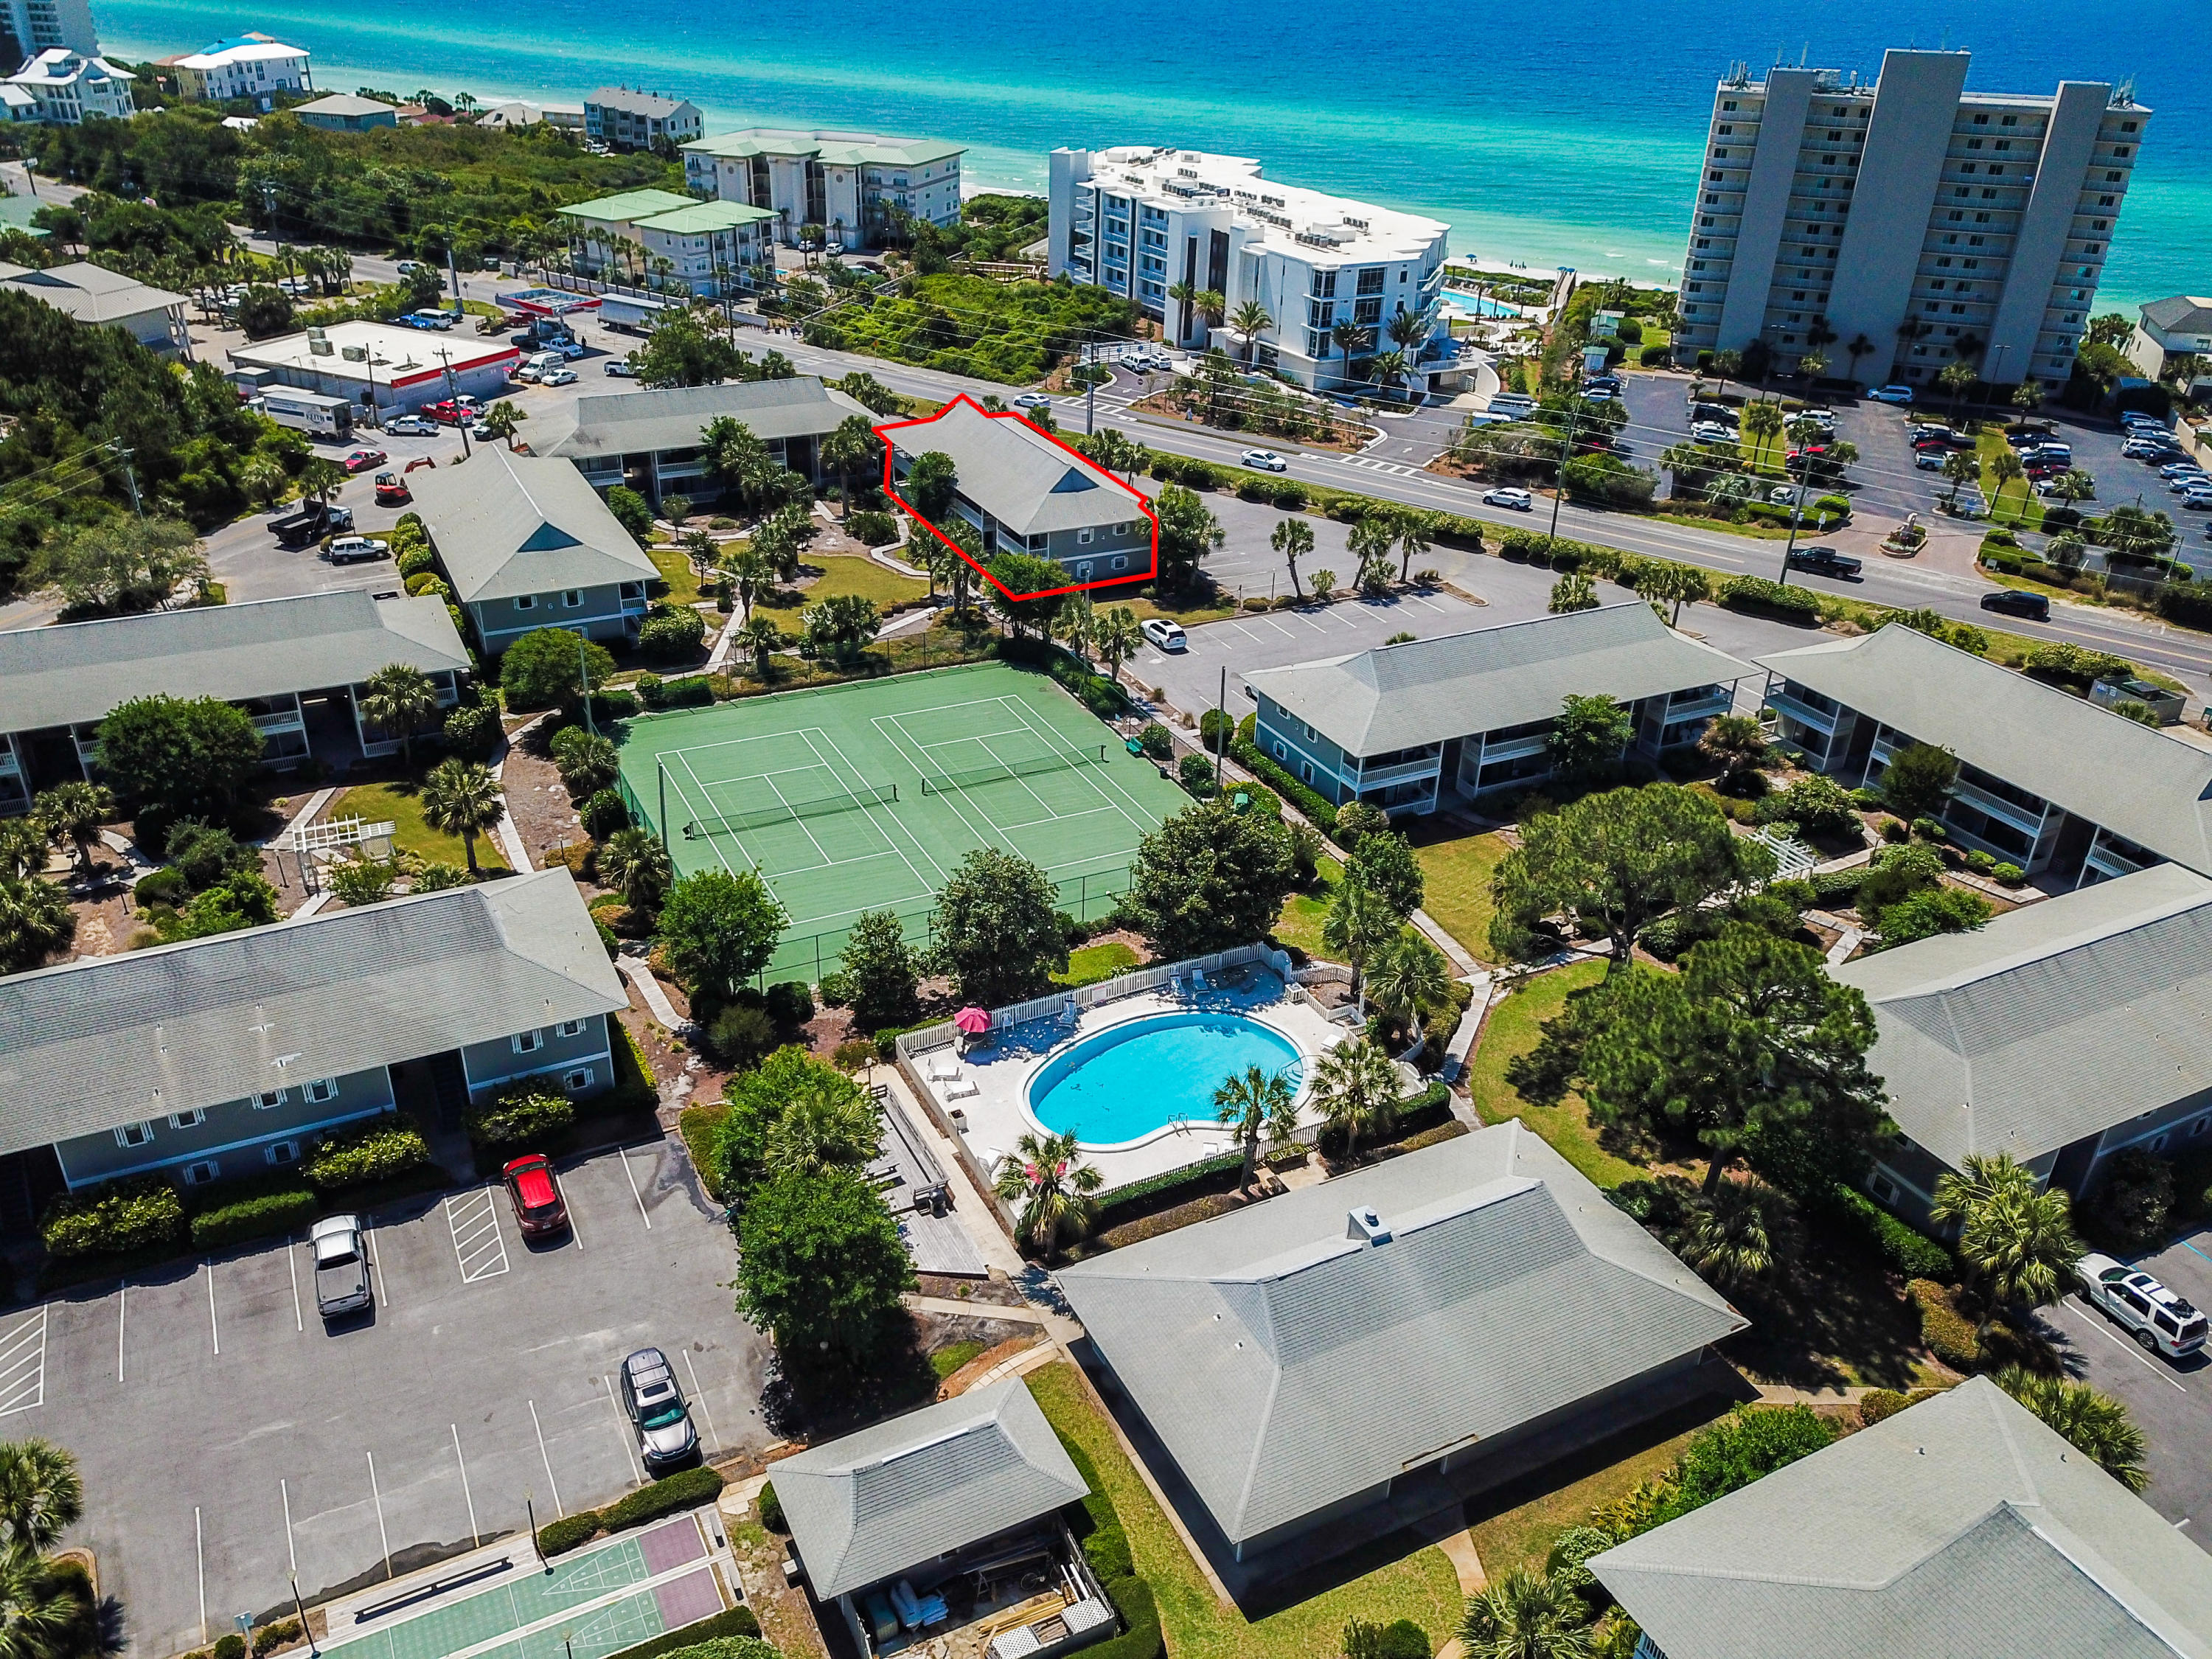 Walk-in ready condo in the heart of Seagrove Beach! This condo was completely remodeled including new furniture in 2016. The 1 bedroom with bunk beds condo is located directly across Highway 30-A from county deeded beach access. This never-rented condo is being sold completely furnished and the remodel included quartz counter tops, fresh paint throughout (including cabinets), bunk beds, new glass slider doors, new HVAC unit (2016), new hot water heater (2018), glass shower doors, tub refinished, recessed lighting, stainless steel ceiling fans, and new solid glass doors leading to the balcony overlooking the green space. This must-see condo is the place you have been looking for along 30-A!